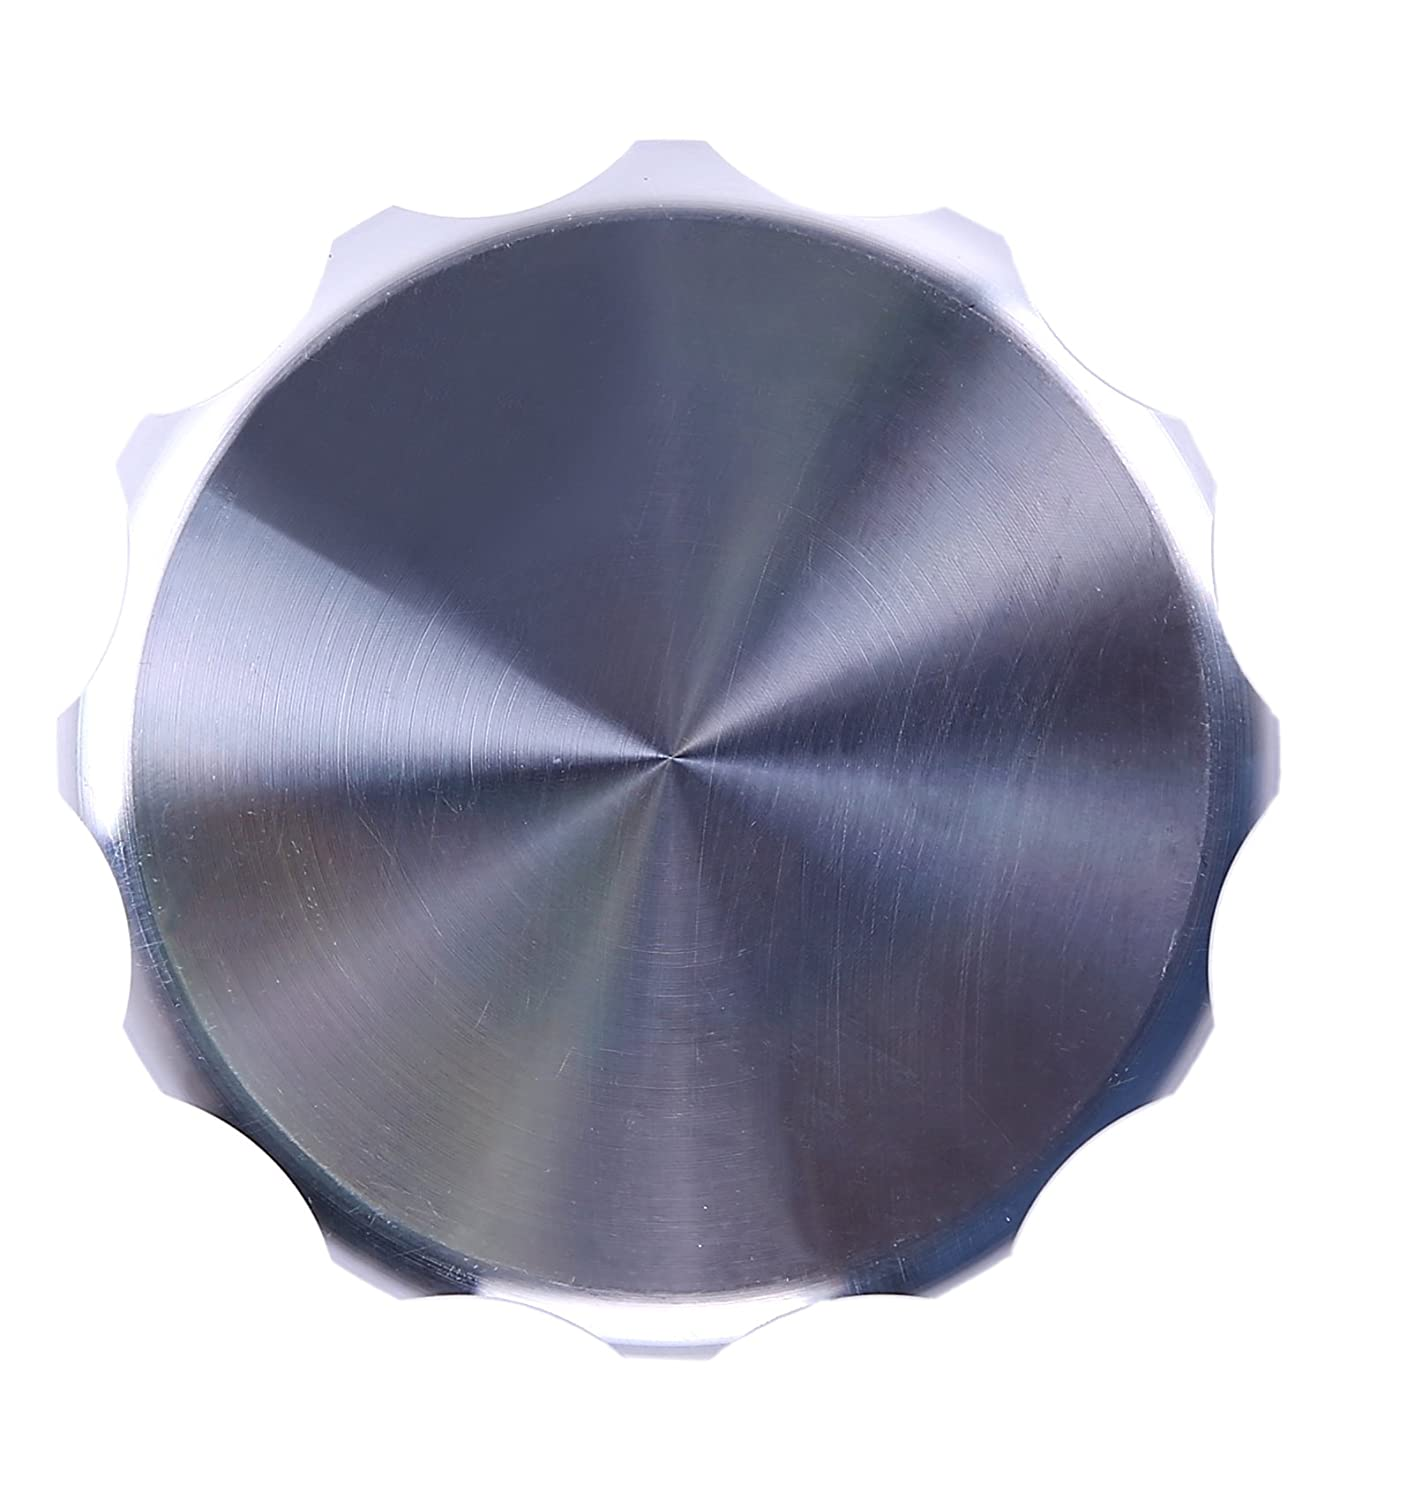 1.5 inch, silver HiwowSport Aluminium Alloy Fuel Cap Weld On Filler Neck Oil Tank Cap